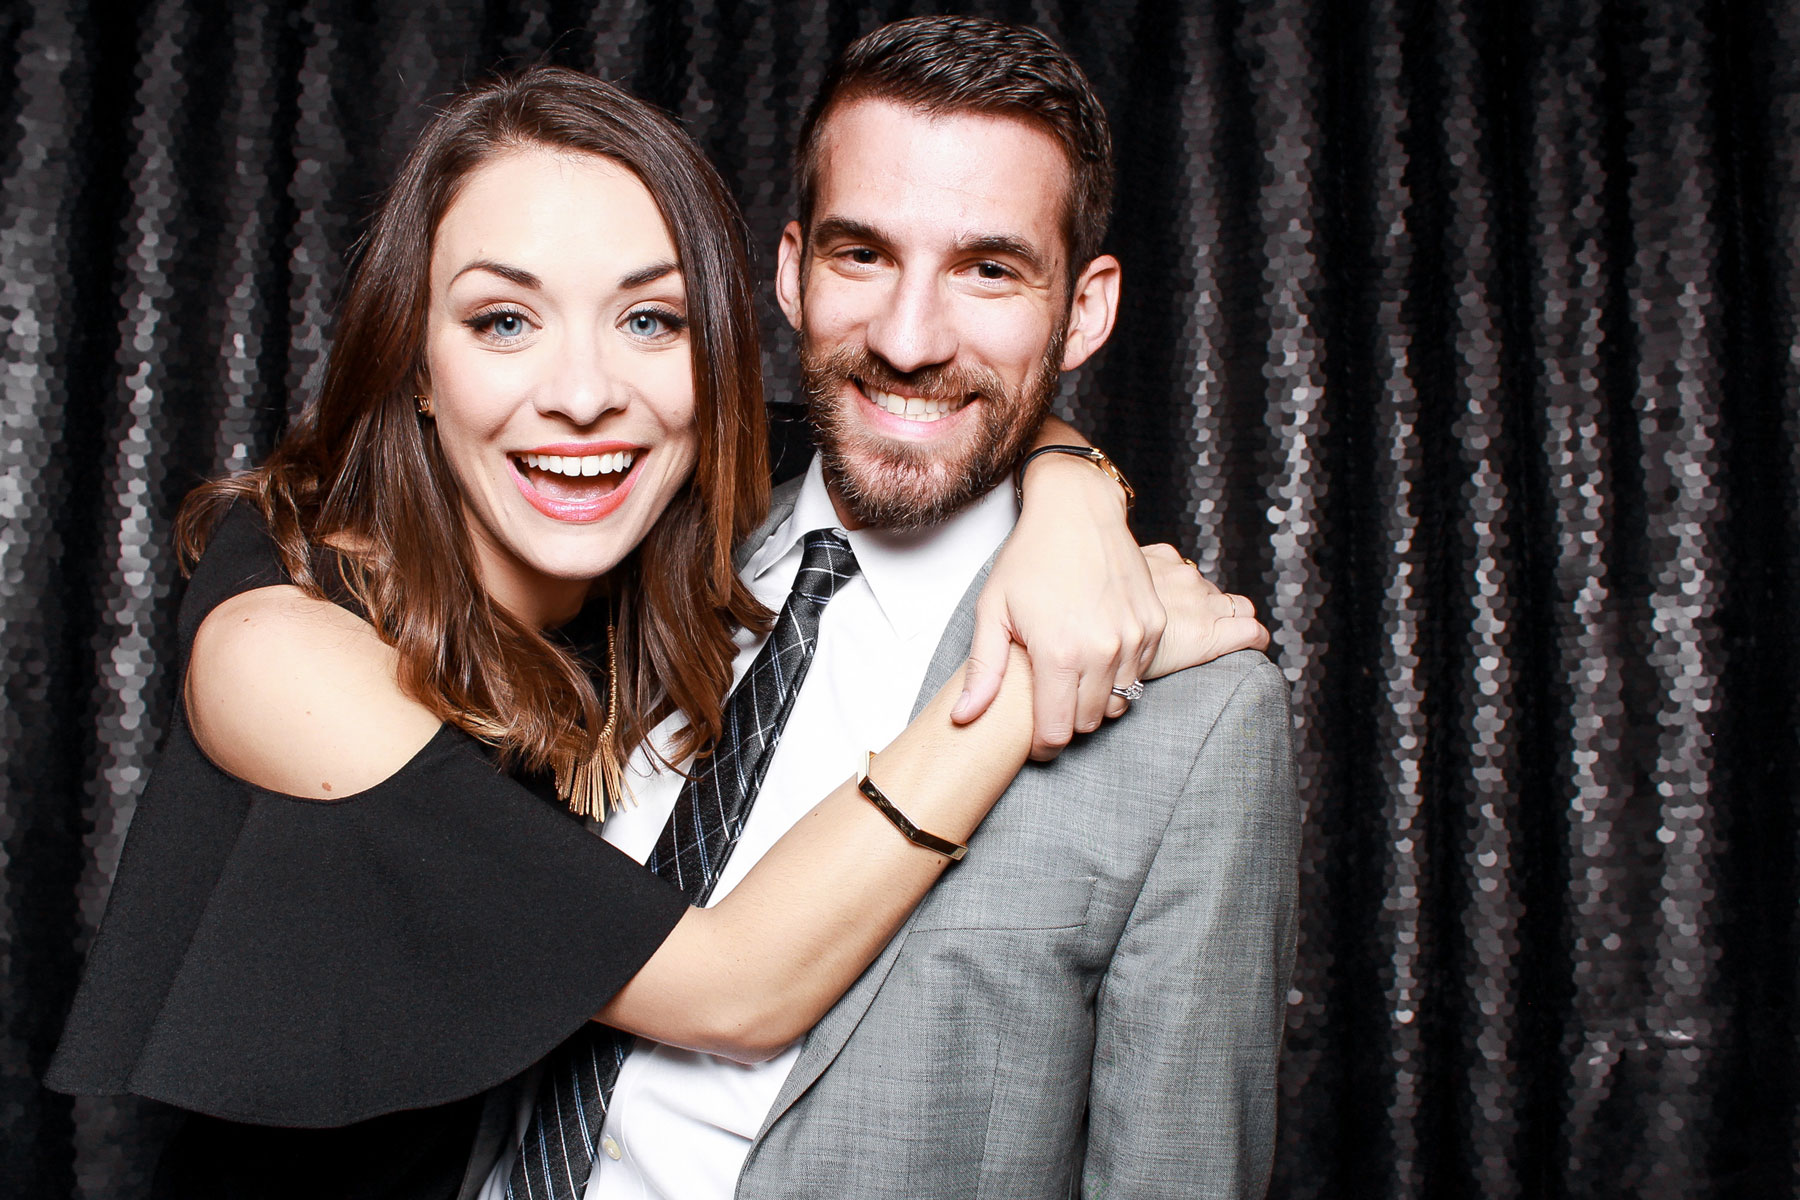 Classy Photo booth corporate party